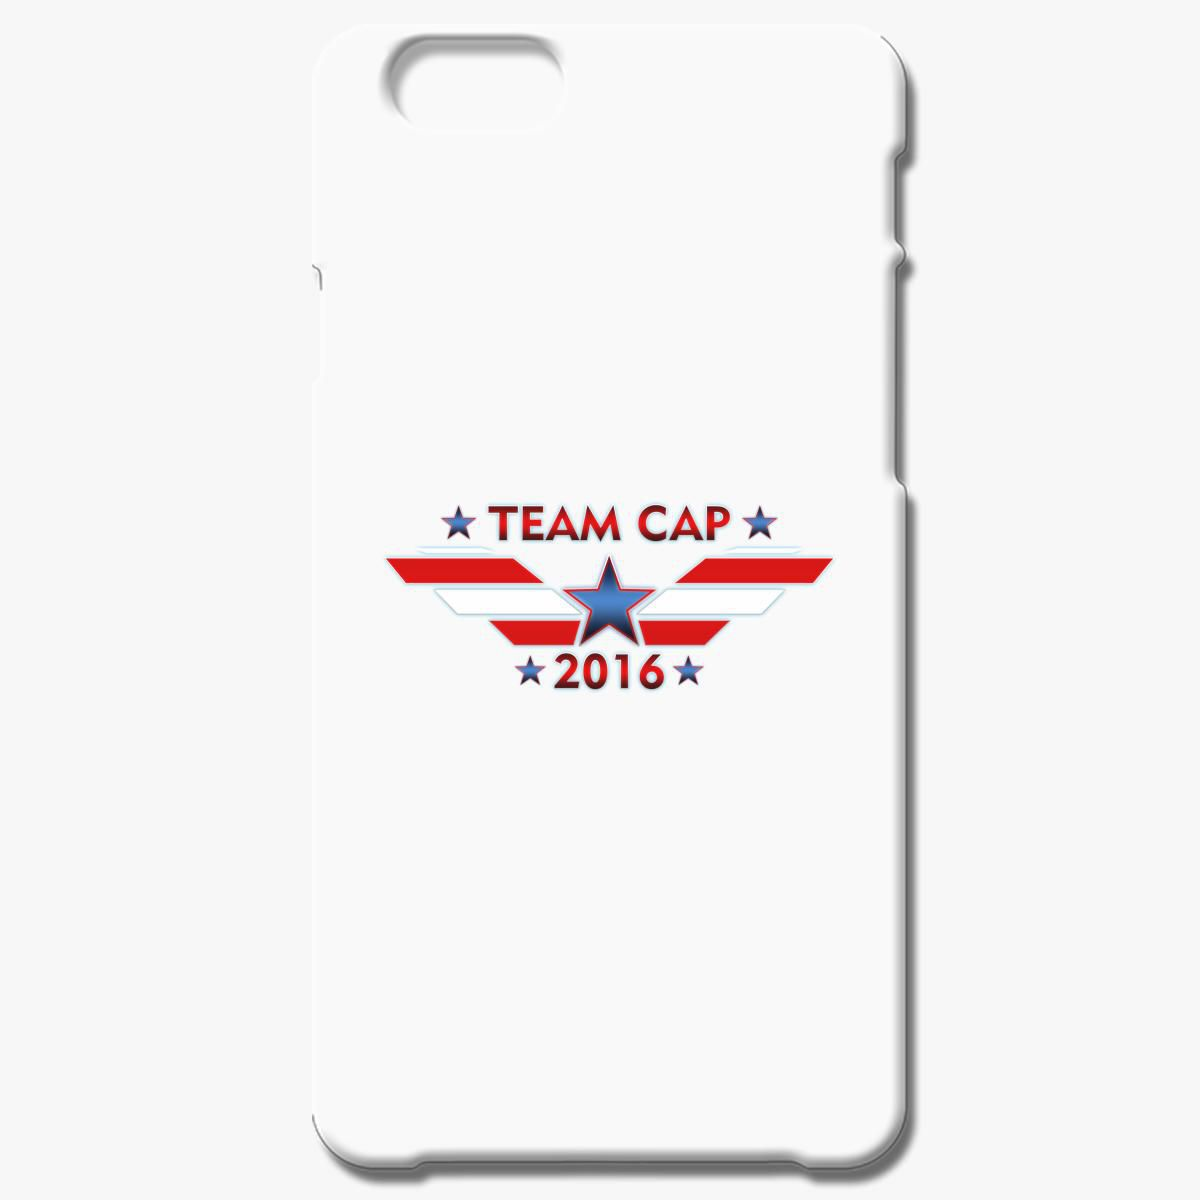 Team Cap Iphone 6 6s Plus Case